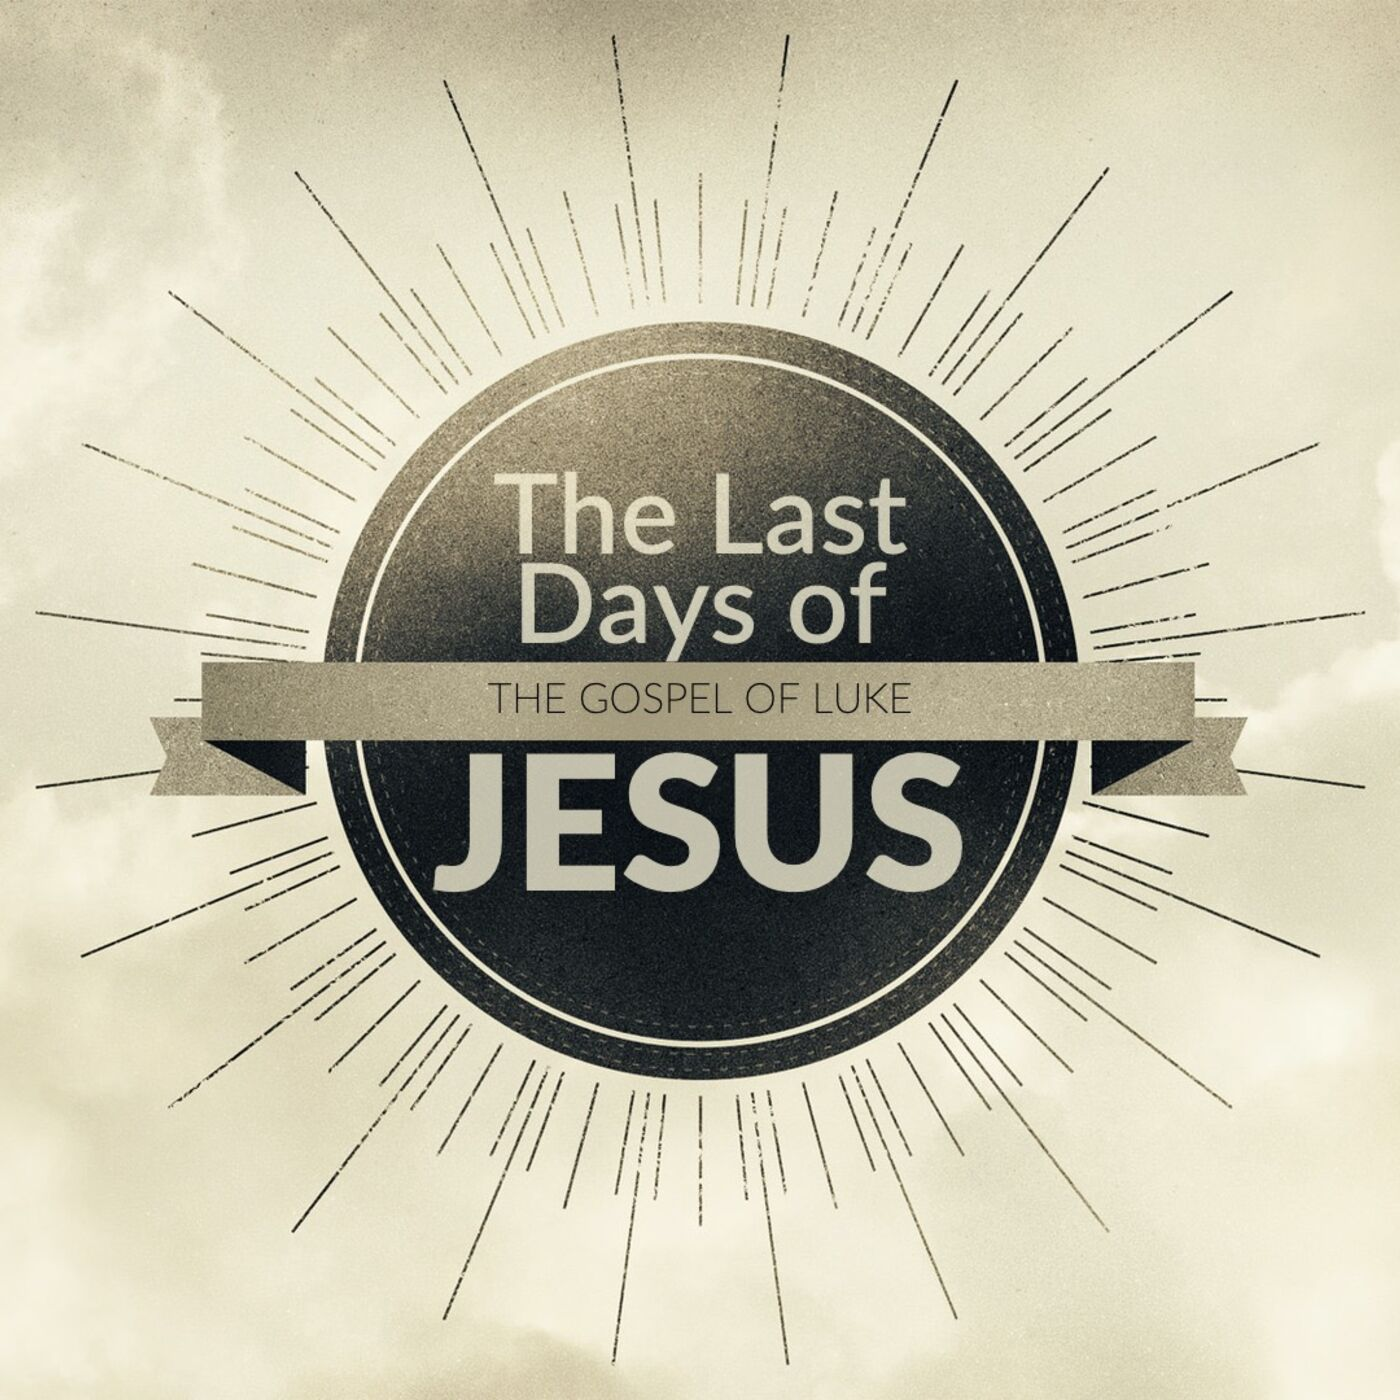 The Last Days of Jesus: Two Rich Men (Luke 18:16-30, 19:1-10)